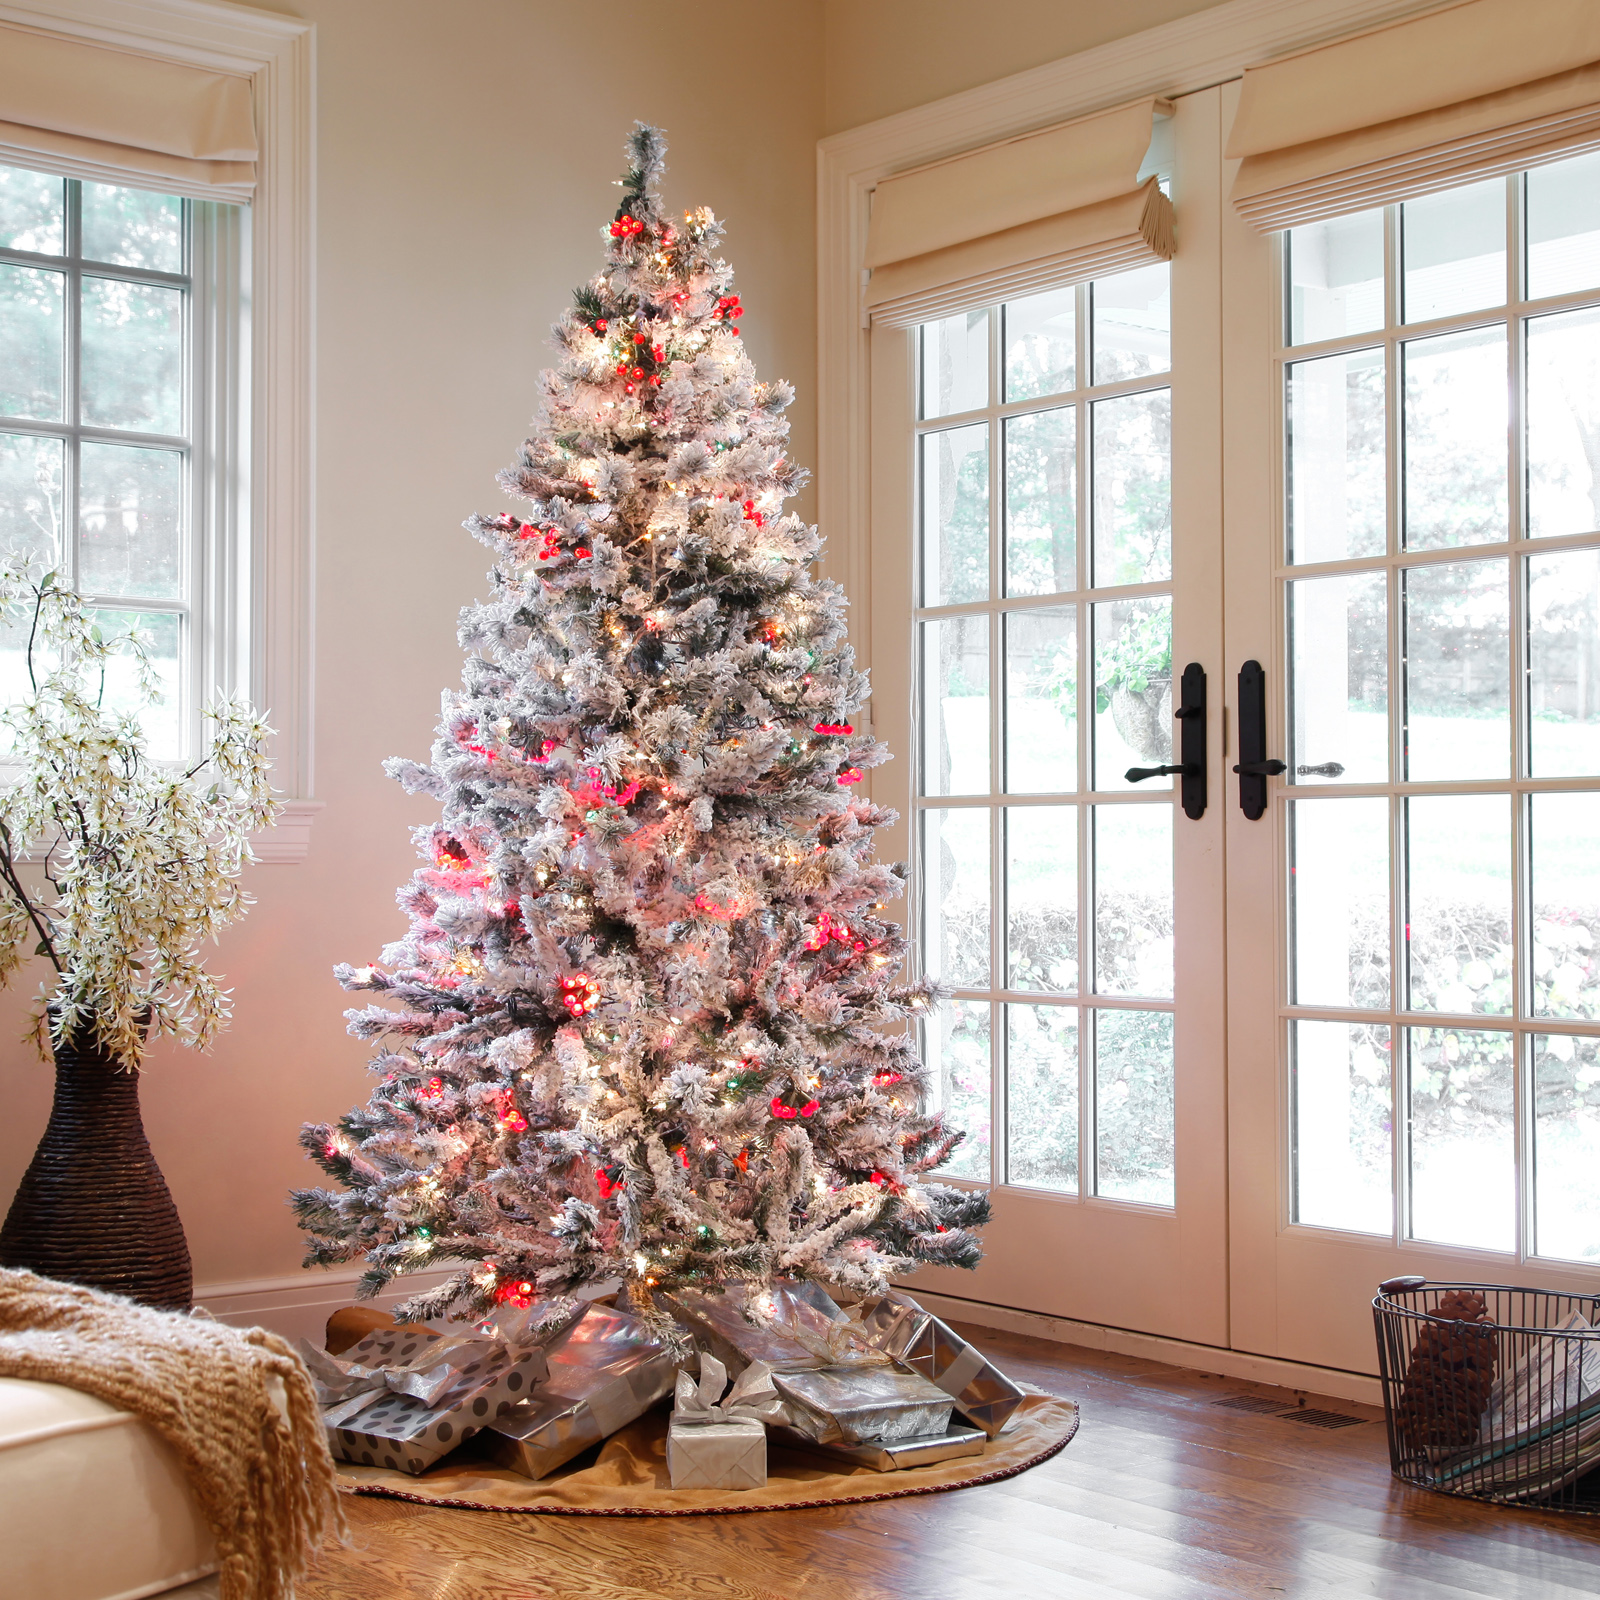 Top 10 Best Christmas Tree Decorating Ideas 2018 2019 Trends